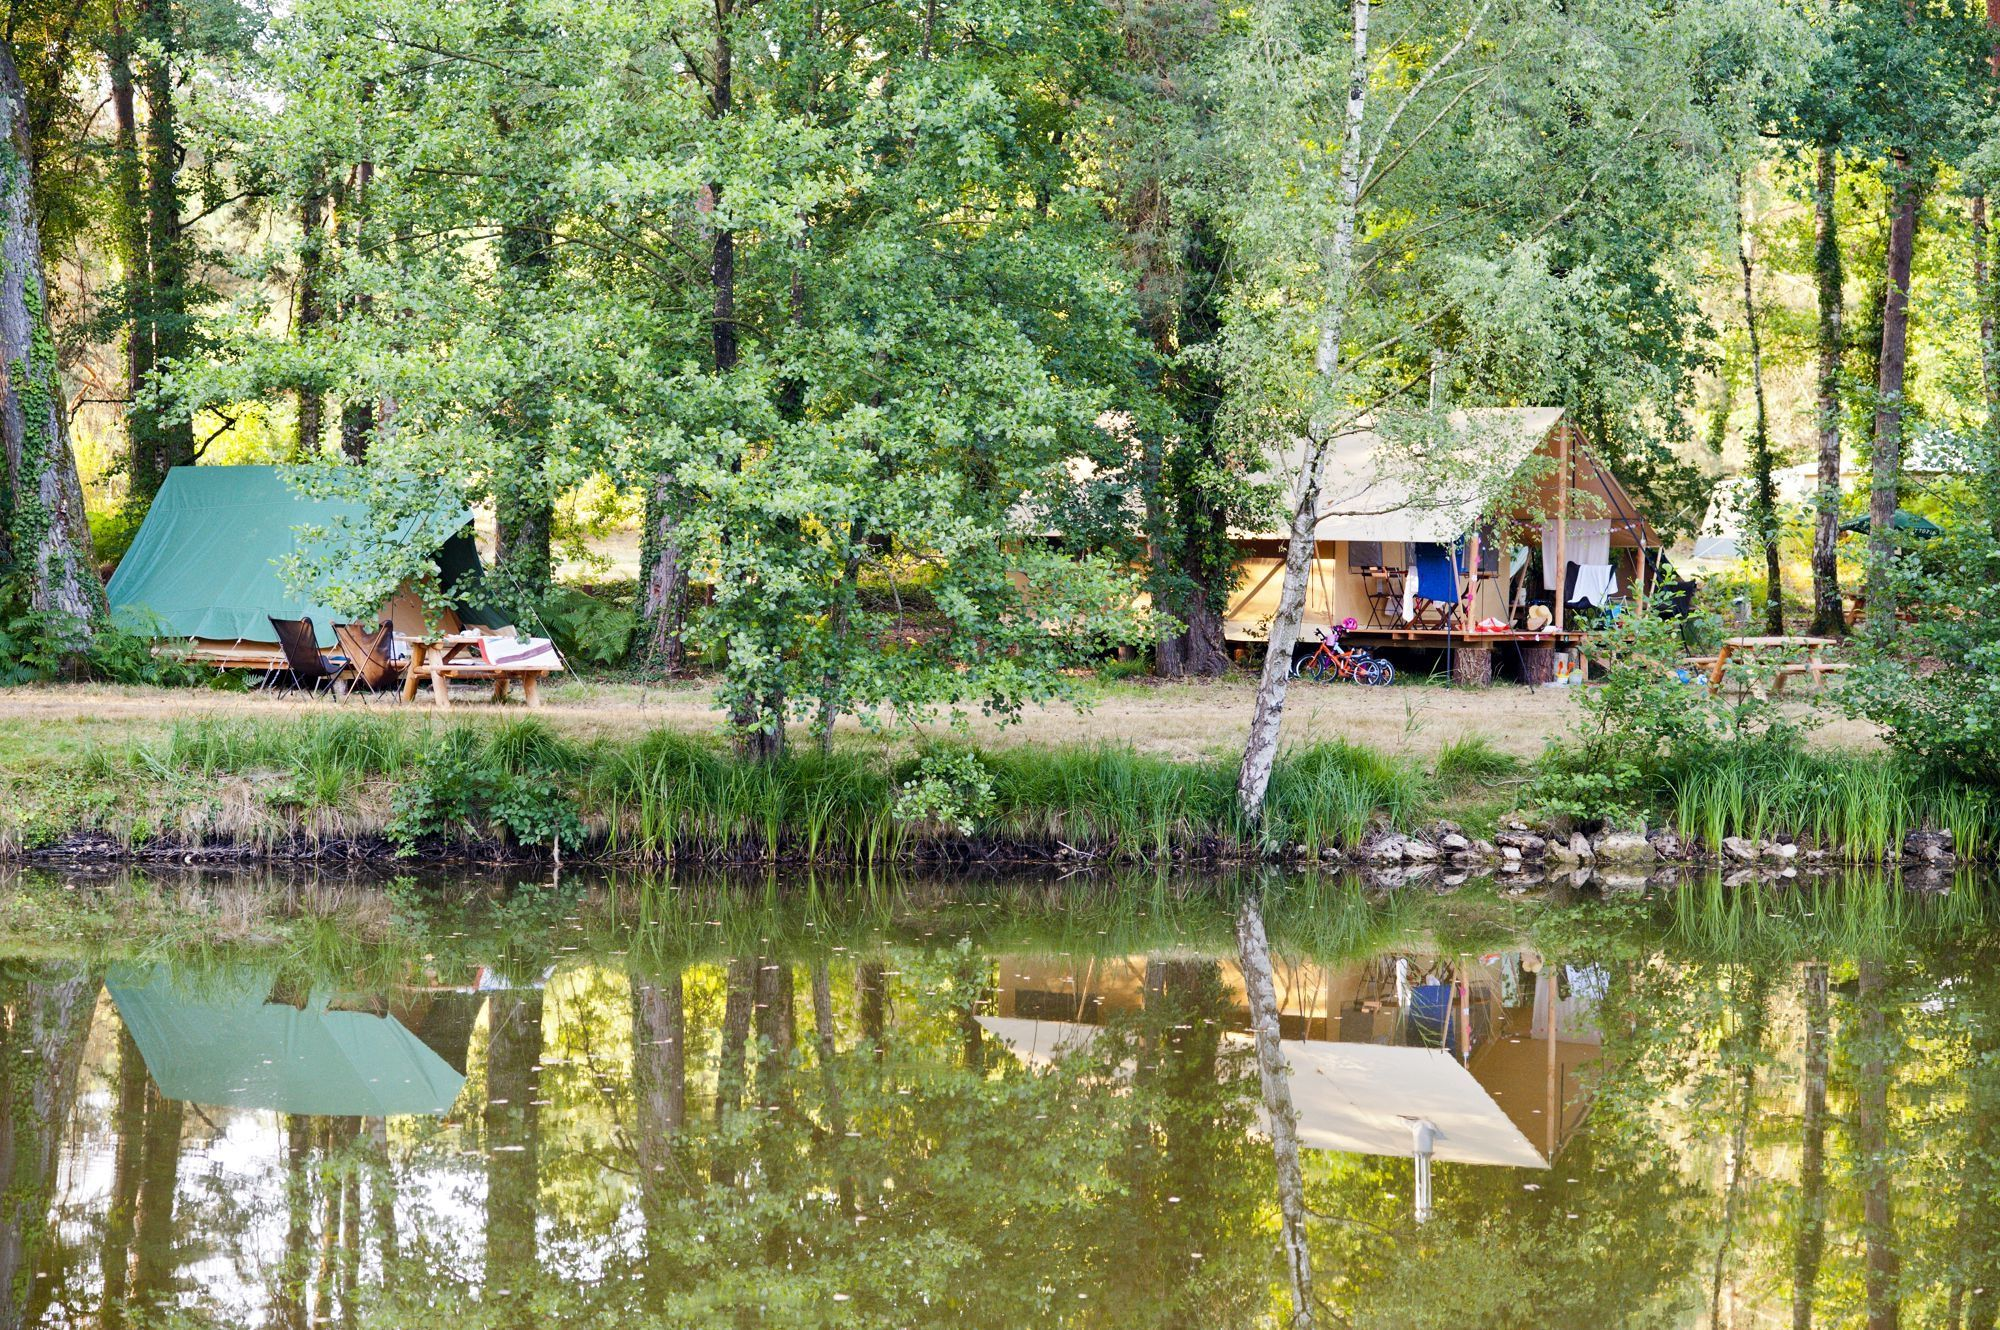 CAMPING DEALS: 15% off stays at Huttopia campsites across ...